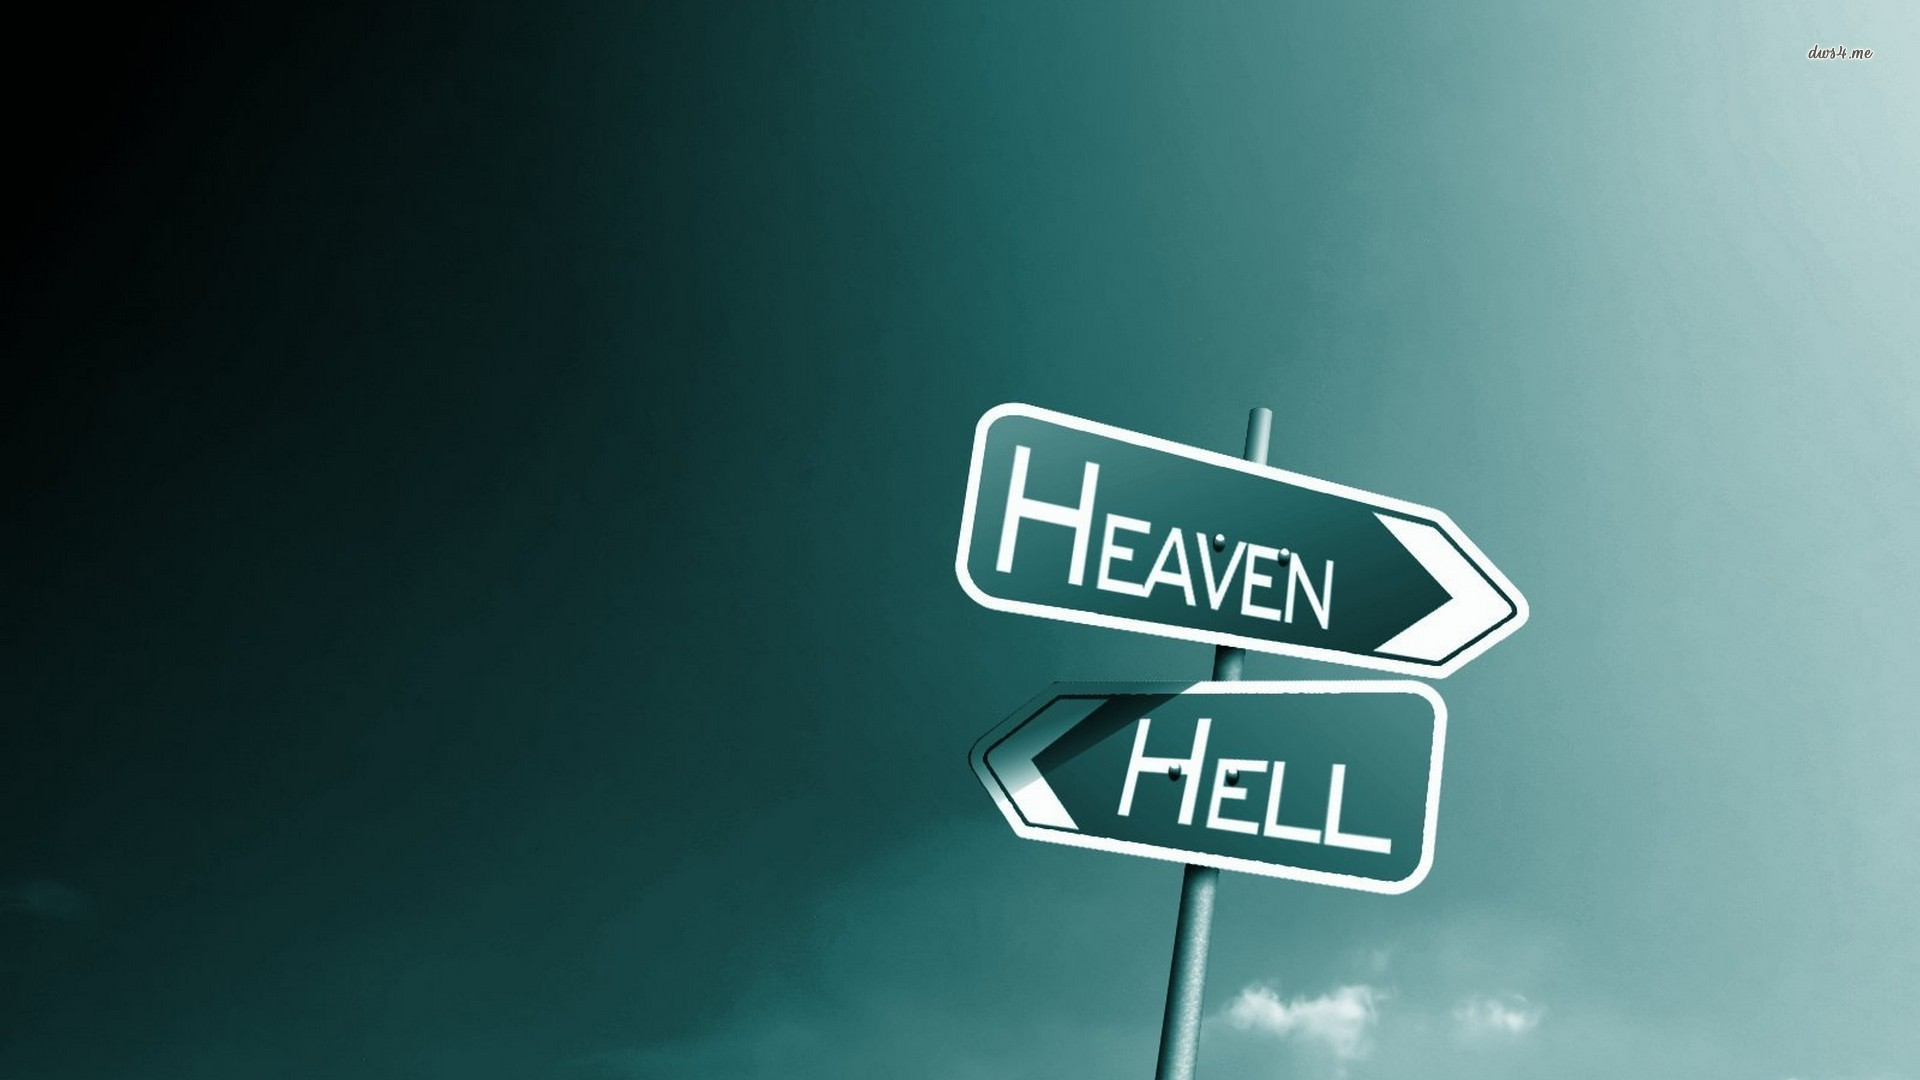 1920x1080 Heaven Or Hell wallpapers HD free - 265133